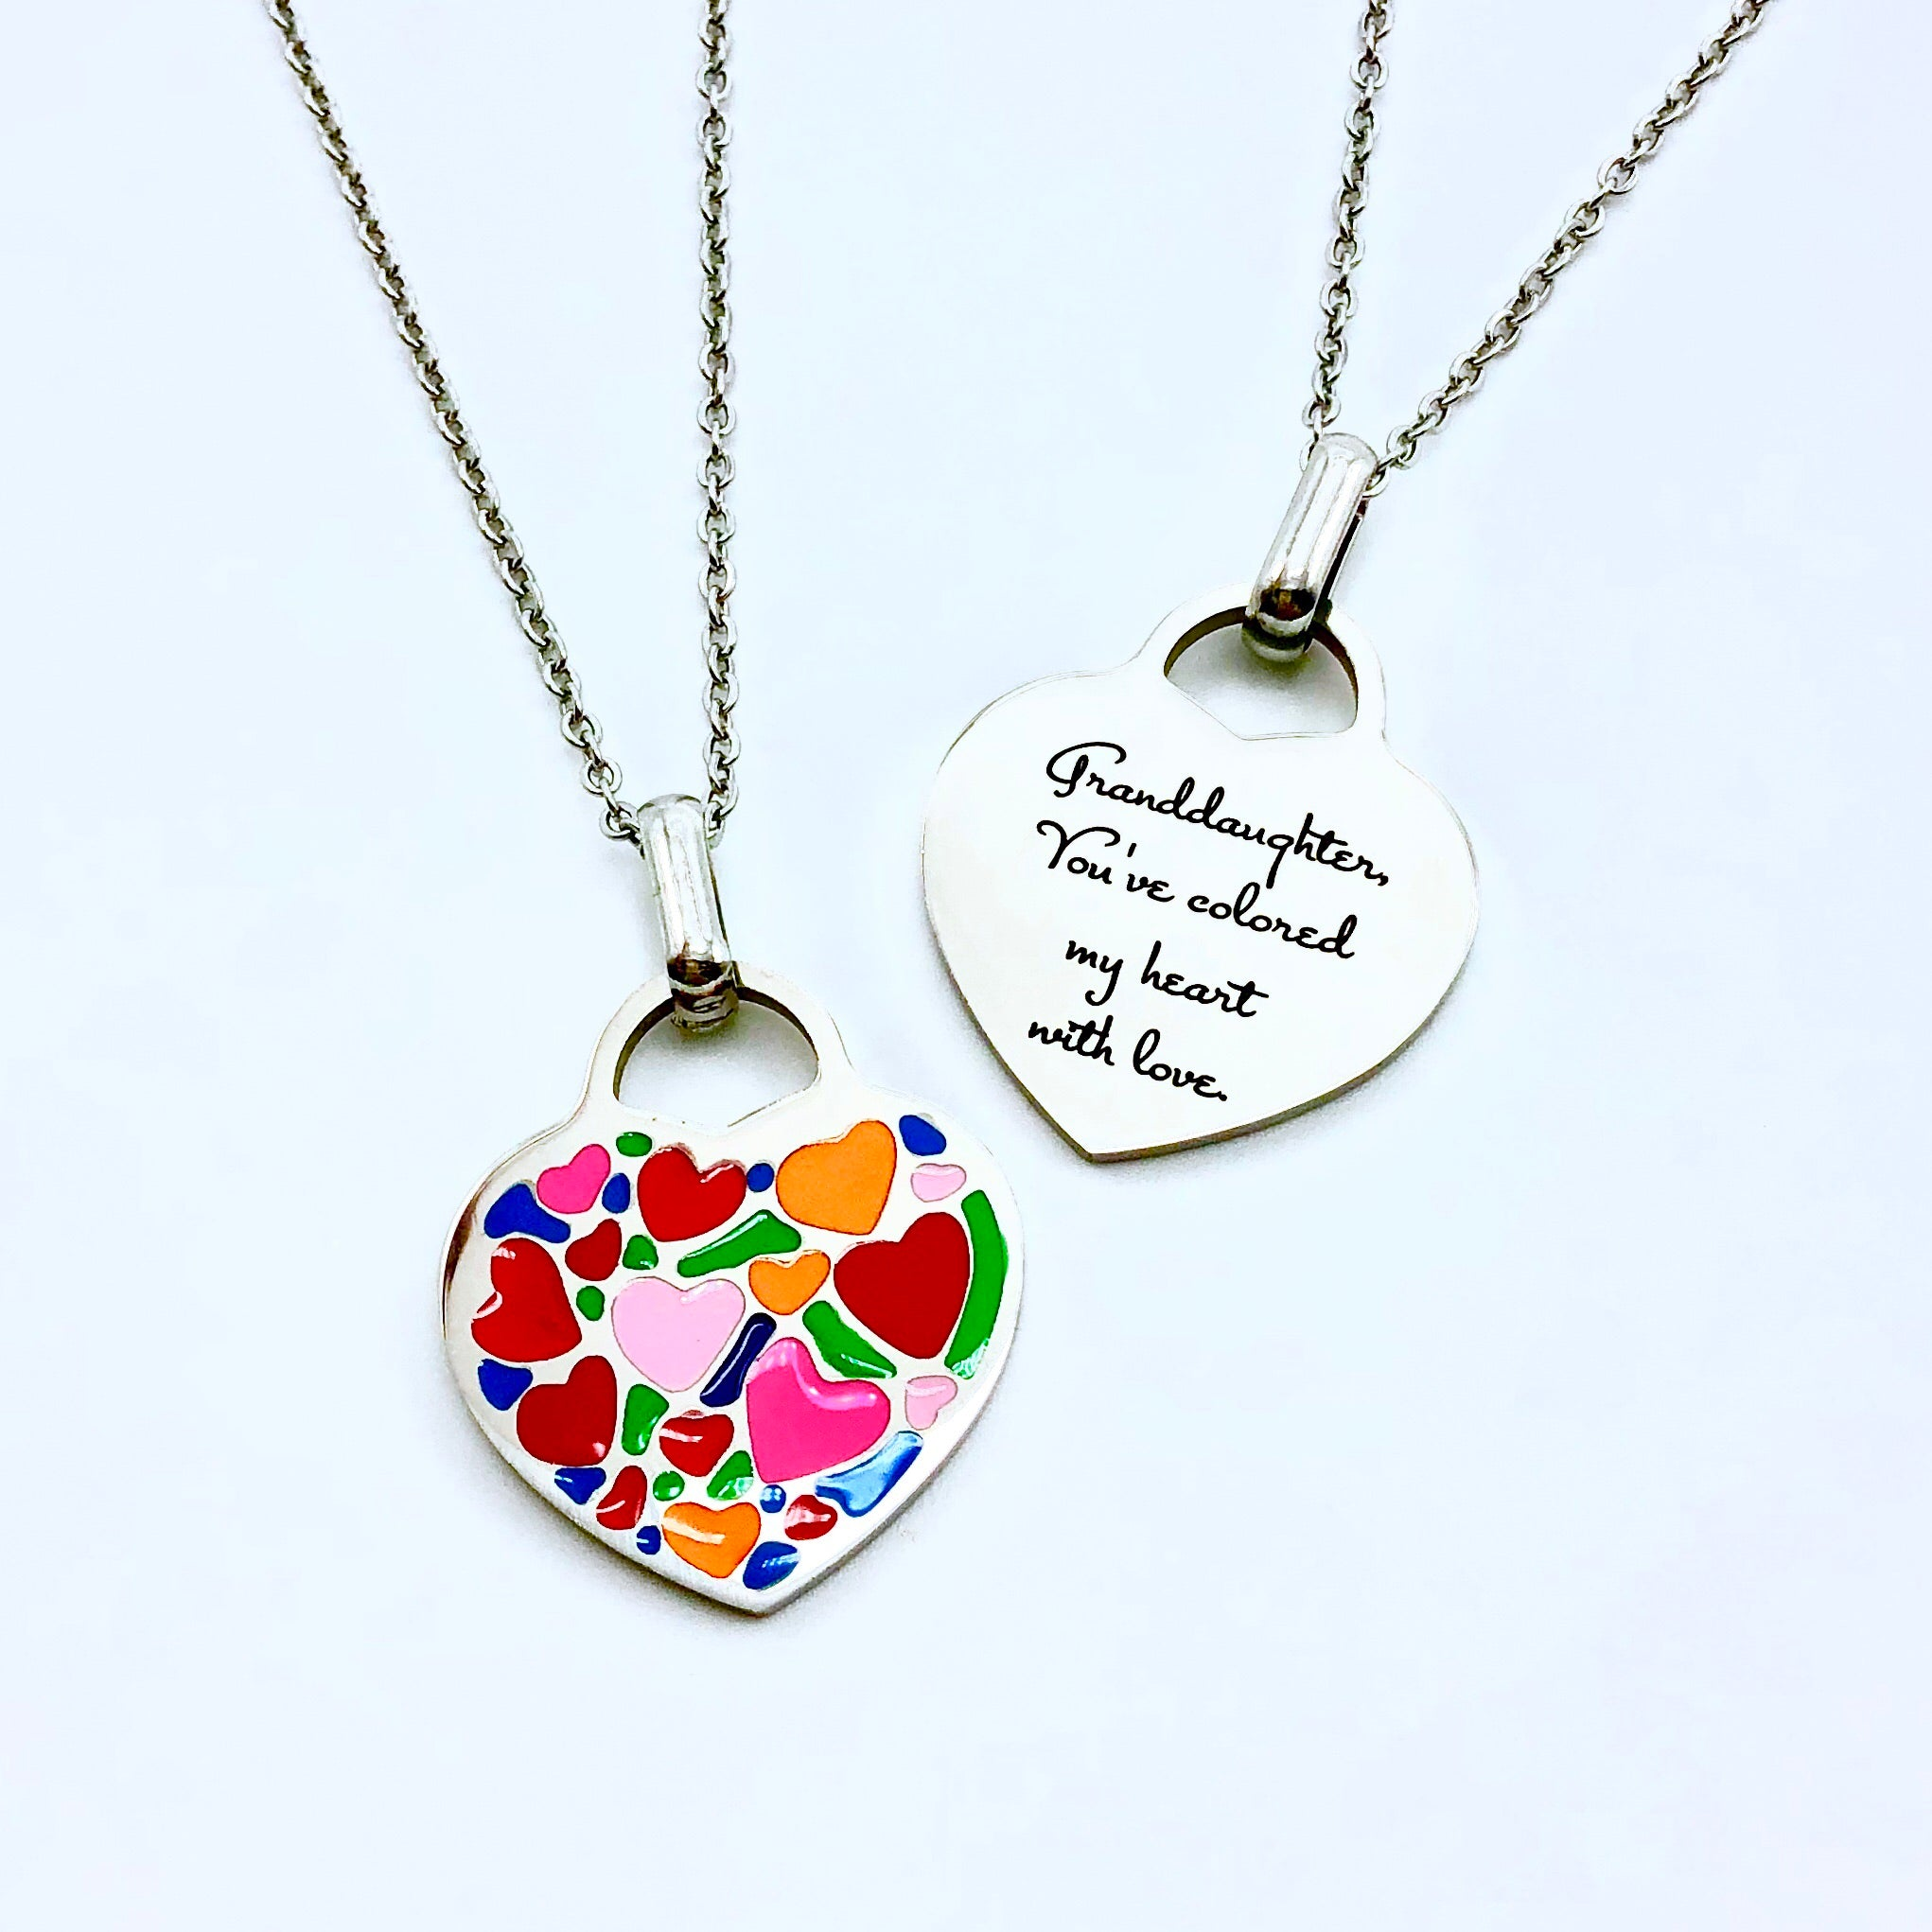 Granddaughter, You've Colored My Heart With Love - Necklace